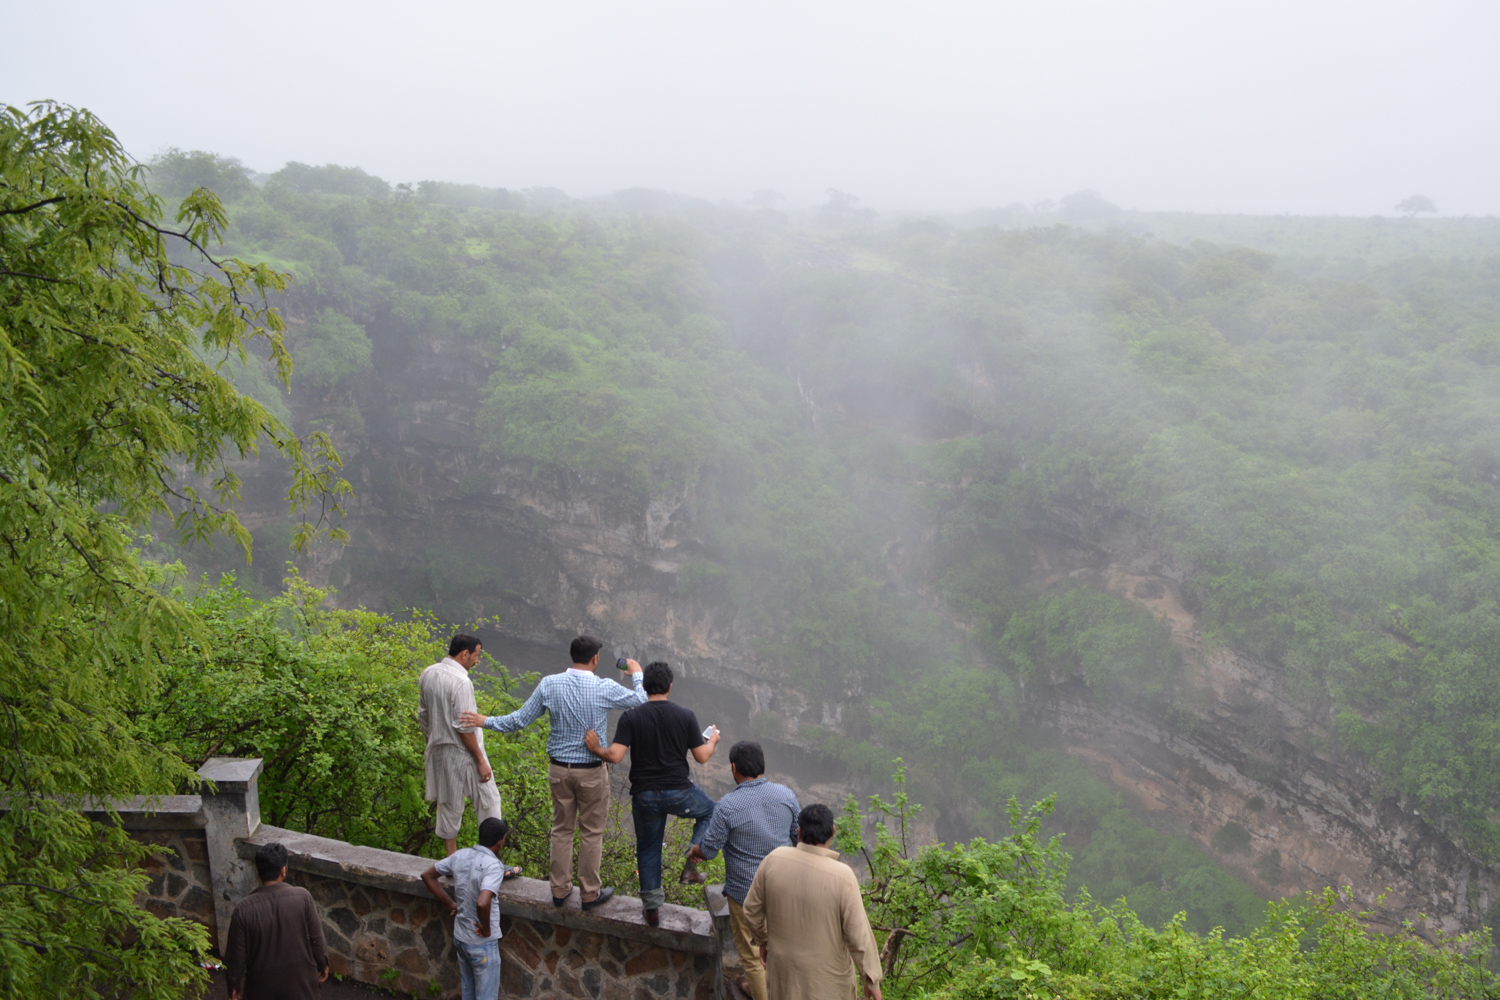 """Lonely Planet Blog    LP Pathfinders: top posts from August 2015   LP selected our post titled  Misty Greens in Southern Oman  for this awesome recognition, and posted, """"This simple and succinct piece reveals a side to  Oman  you never knew existed. Discover the lush greens and verdant landscapes of 'the Khareef'.""""  Read more:  http://www.lonelyplanet.com/blog/2015/09/08/lp-pathfinders-top-posts-from-august-2015/#ixzz4A3KQ3ytP   Thanks LP! We've always been loyal, and appreciate the support!"""